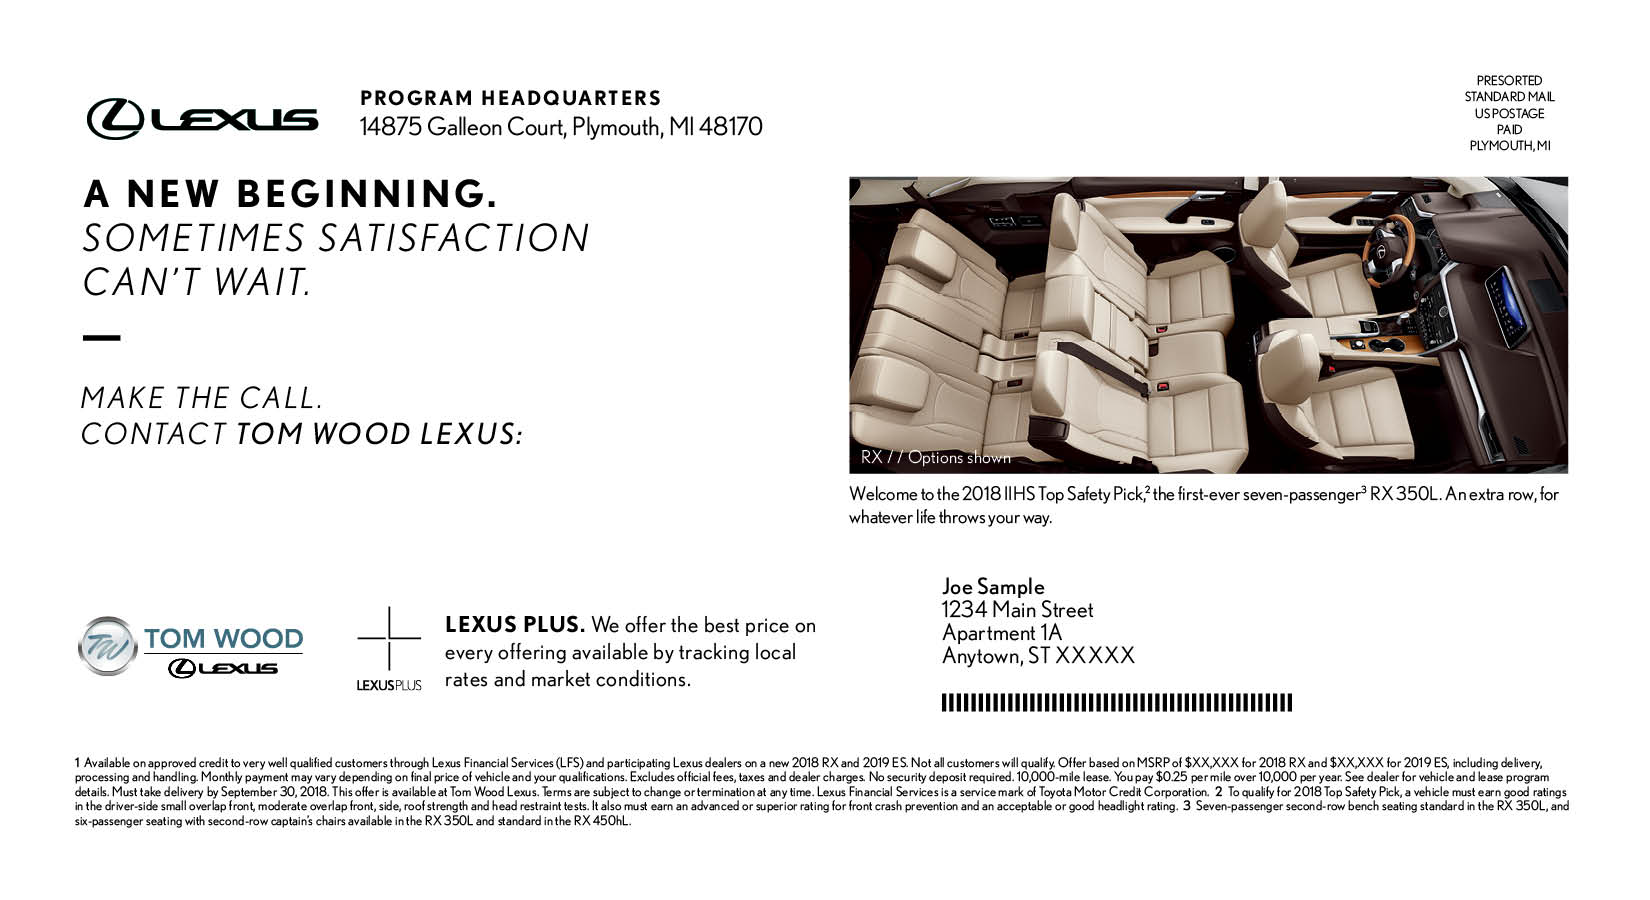 Mailer-03-LeaseOffers_0052.jpg